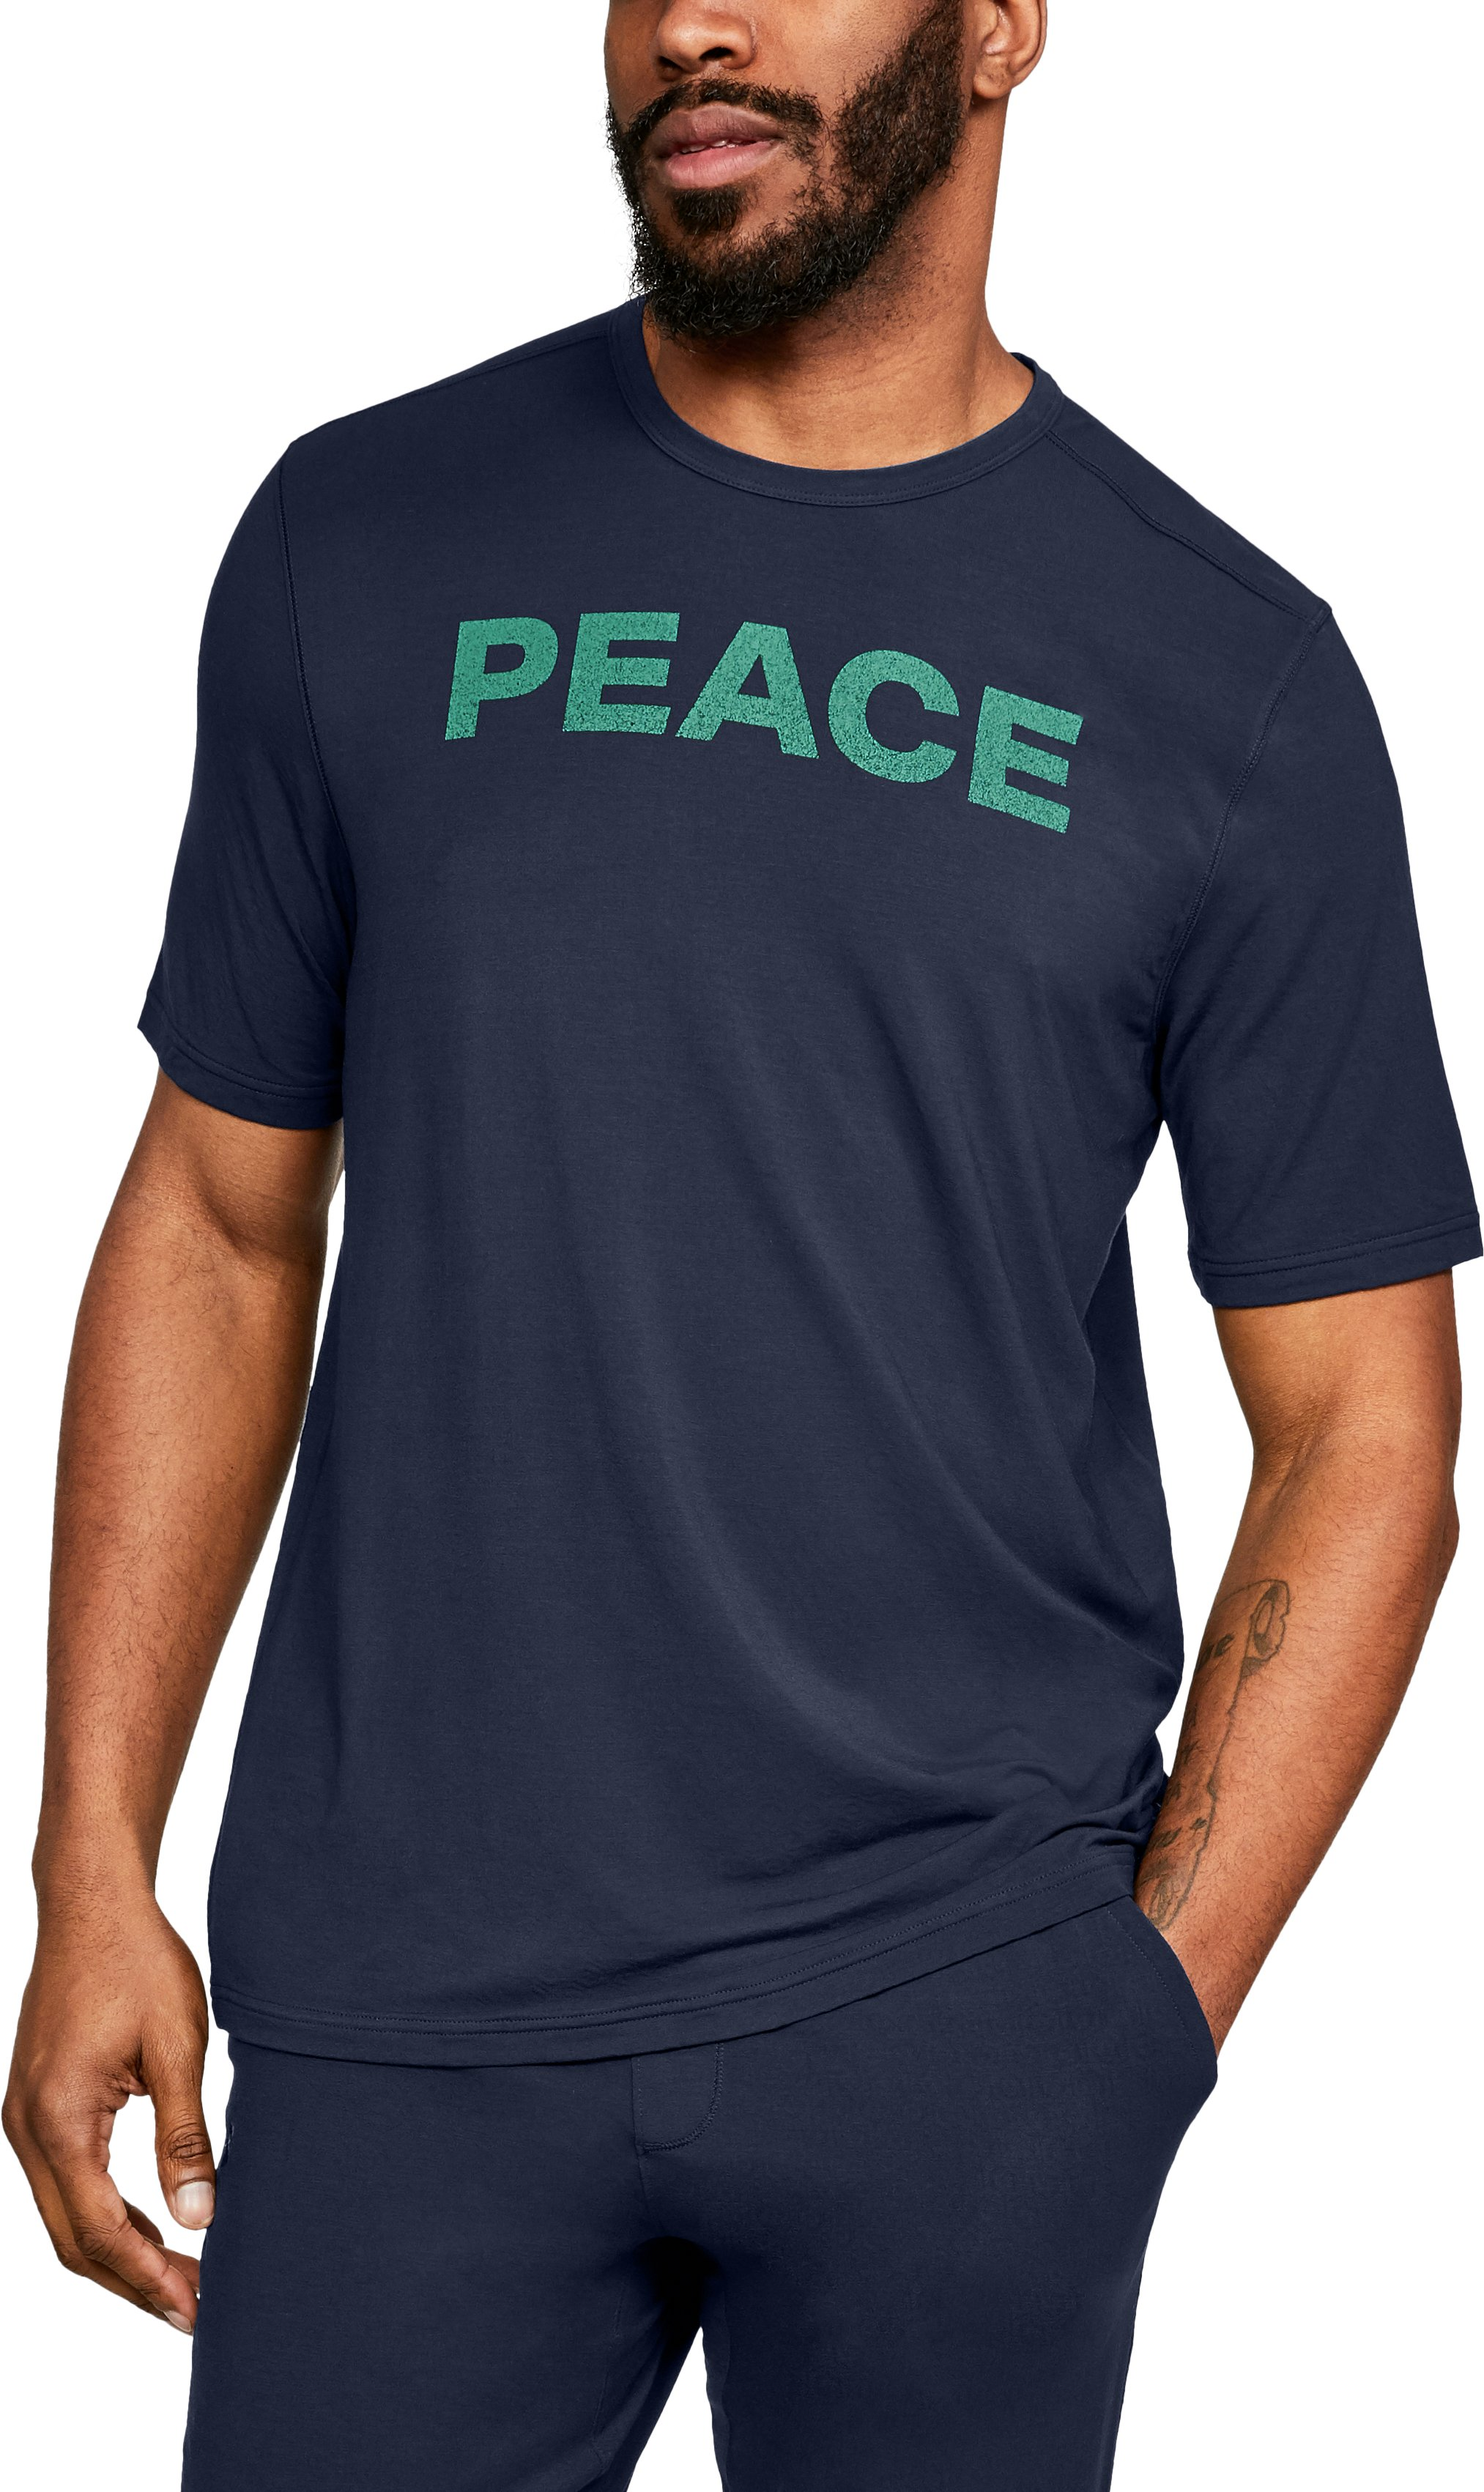 Men's Athlete Recovery Ultra Comfort Sleepwear PEACE Graphic T-Shirt, Midnight Navy, zoomed